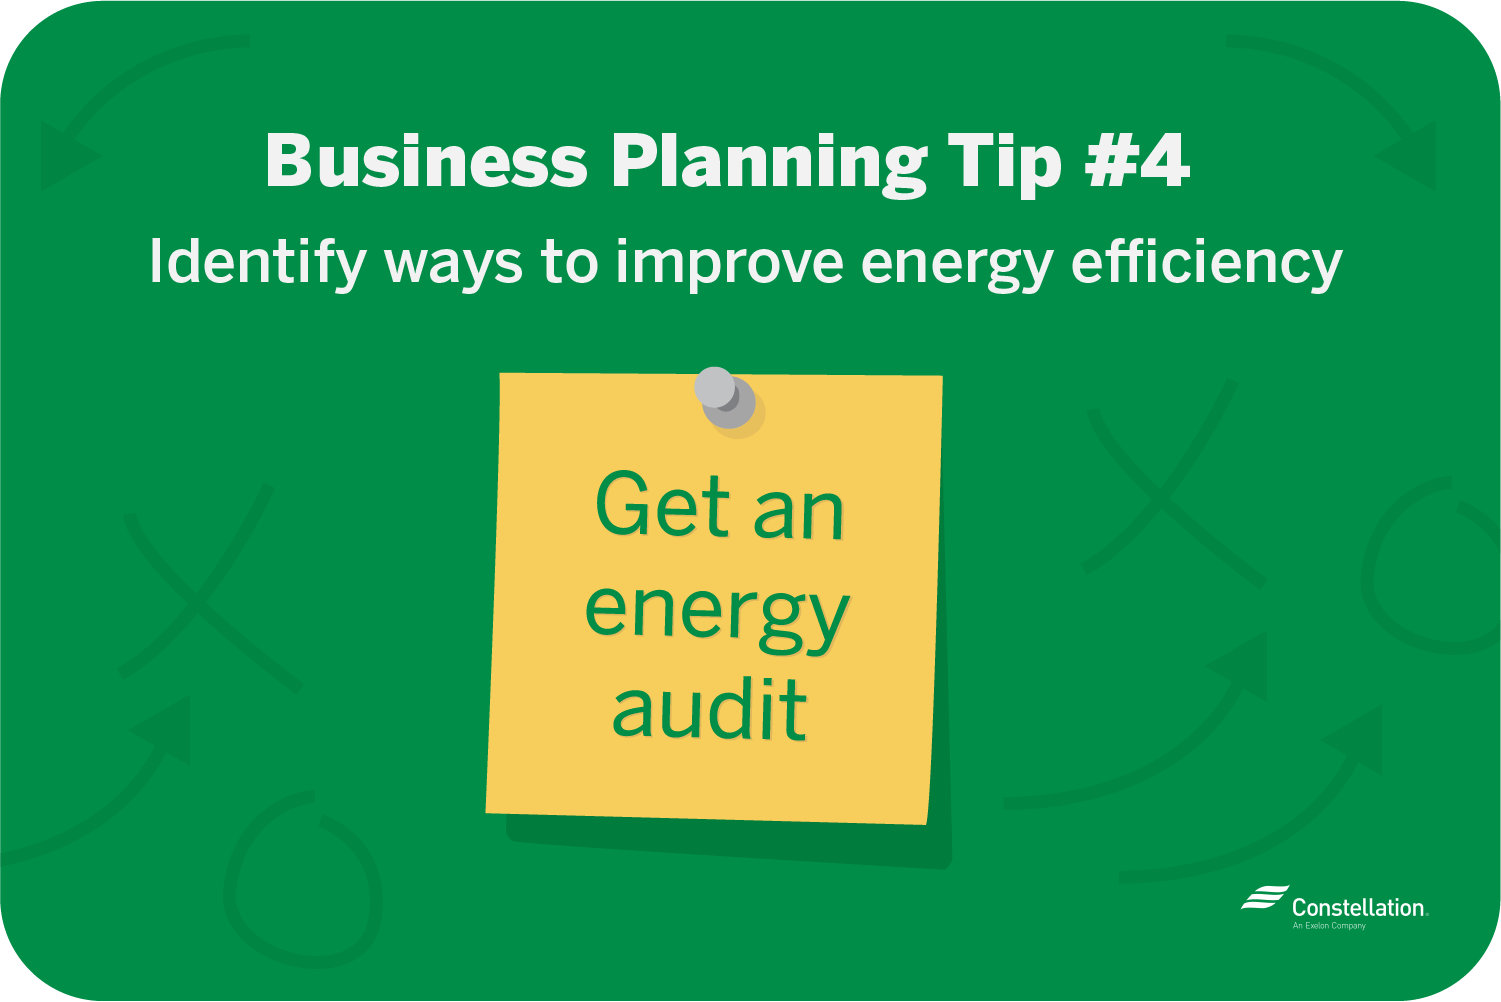 business planning tip: get an energy audit